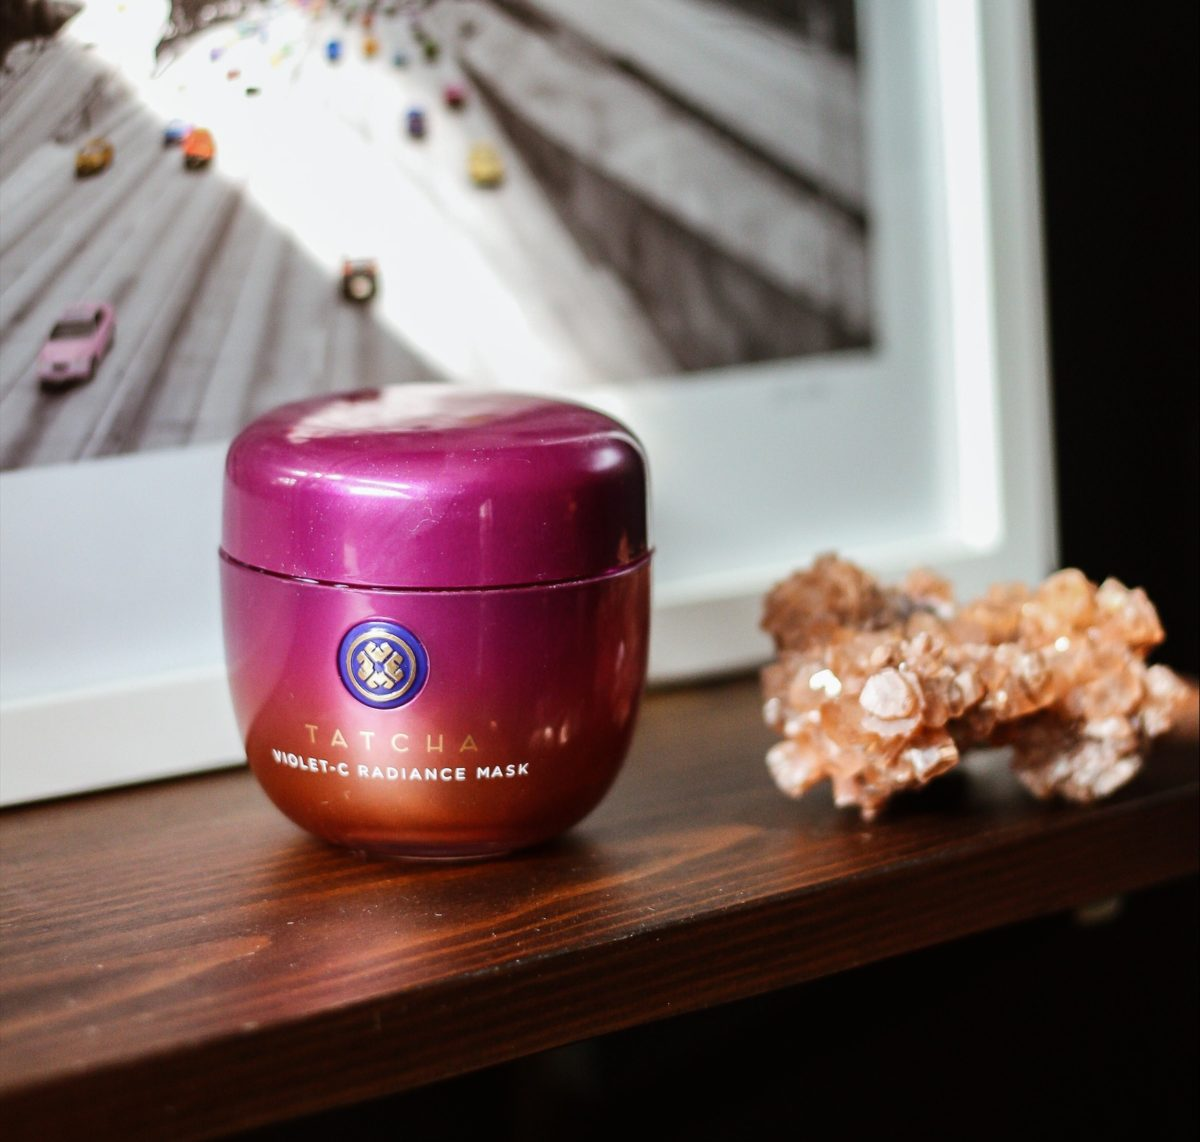 MASK MONDAY: TATCHA VIOLET-C RADIANCE MASK